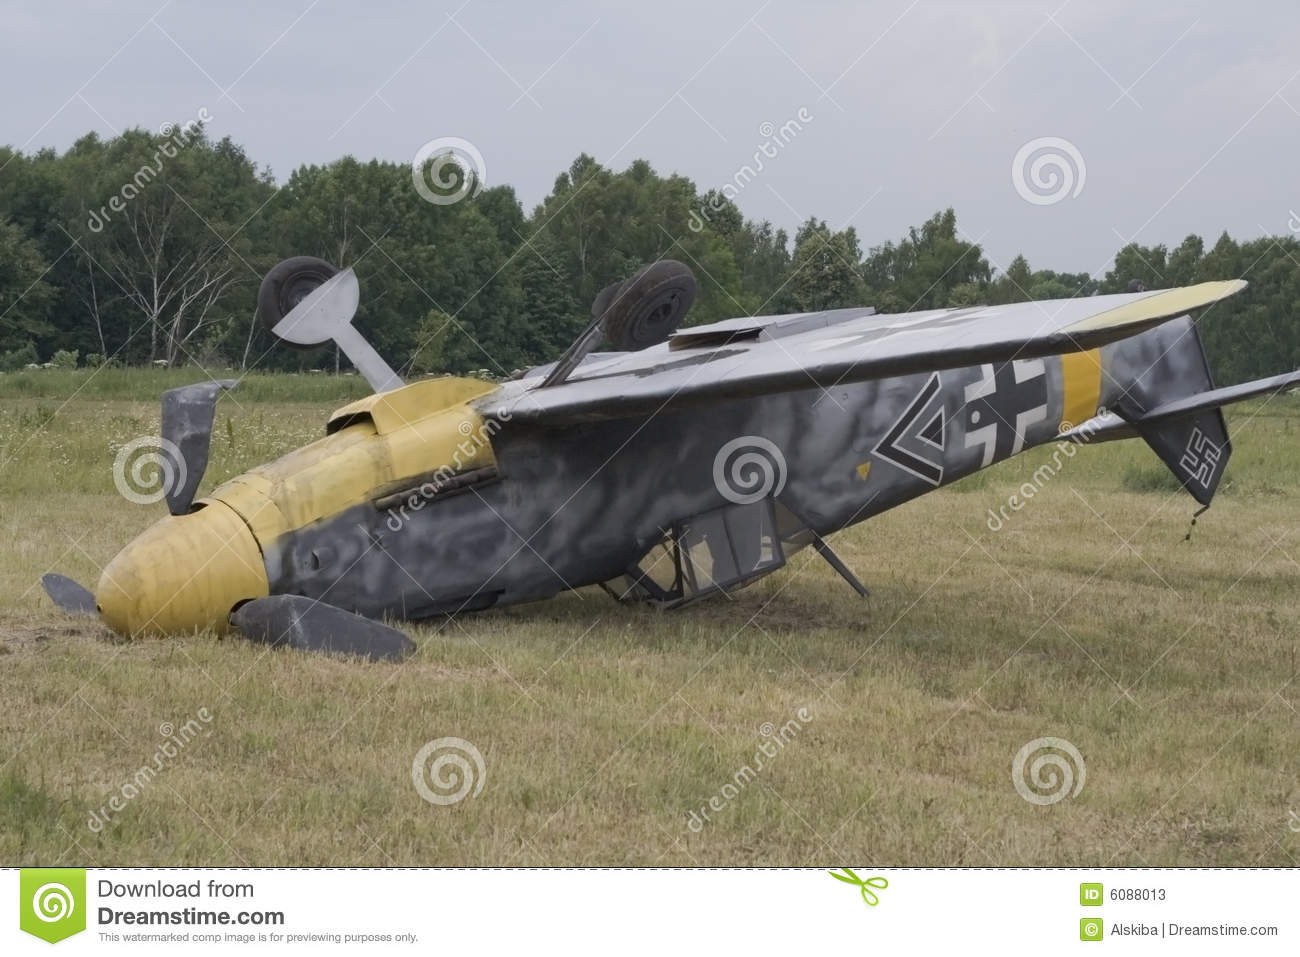 helicopter crash survivor with Stock Photos Crash Military Aircraft Image6088013 on Neverforget furthermore Scott Caan Takes Stroll New York Girlfriend Kacy Byxbee Daughter Josie as well Story in addition Transgender pride tshirts likewise 75241988.